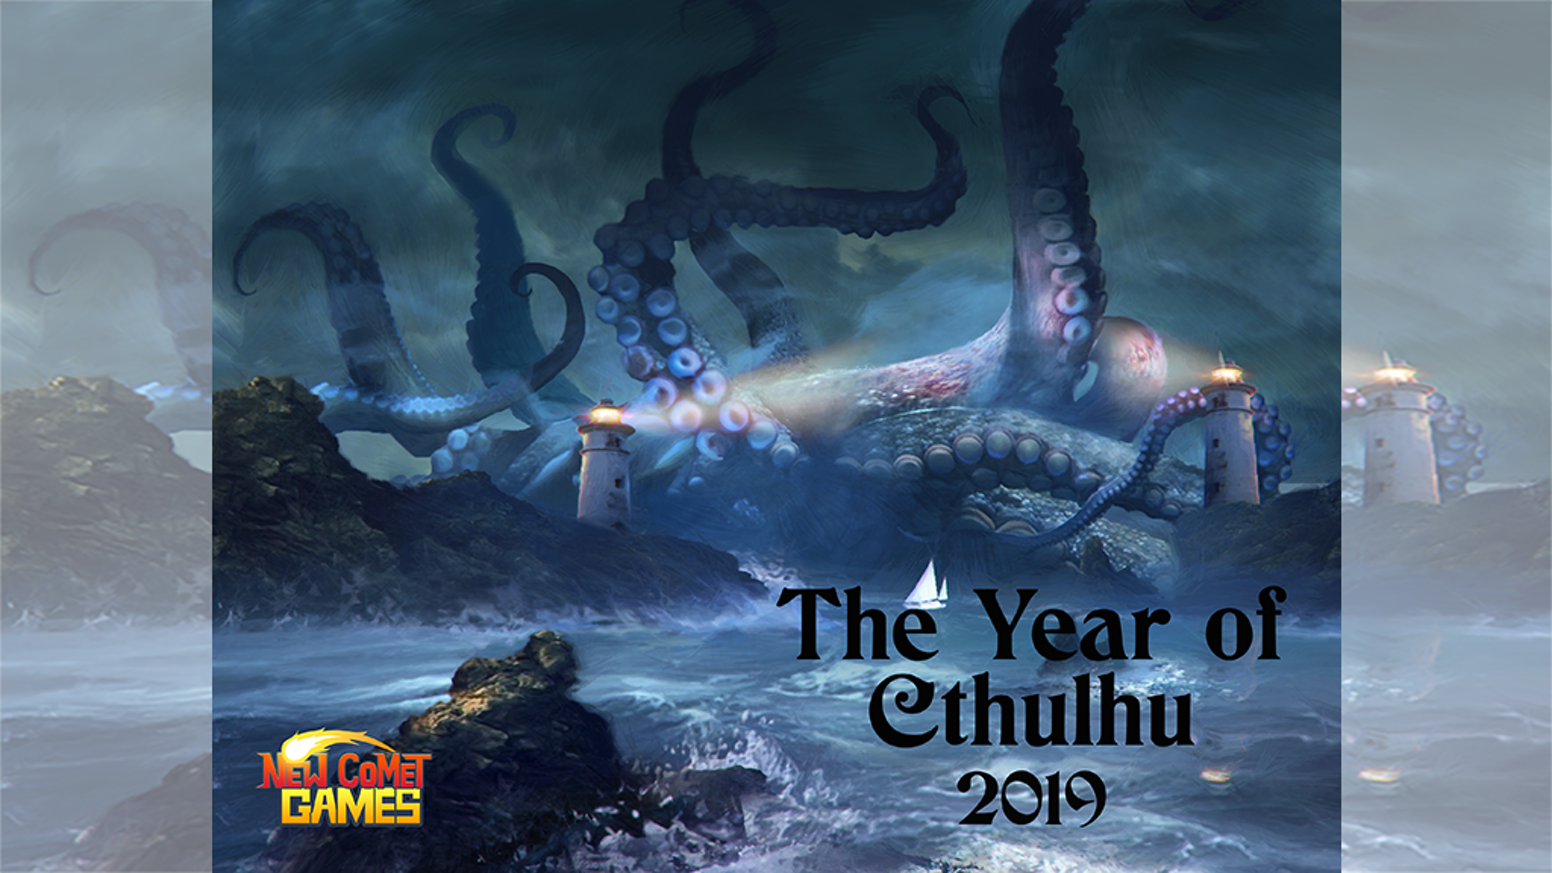 A Calendar featuring Cthulhu and other mythos strangeness, featuring the art work of Evgeni Maloshenkov. 12 Fantastic images for 2019.